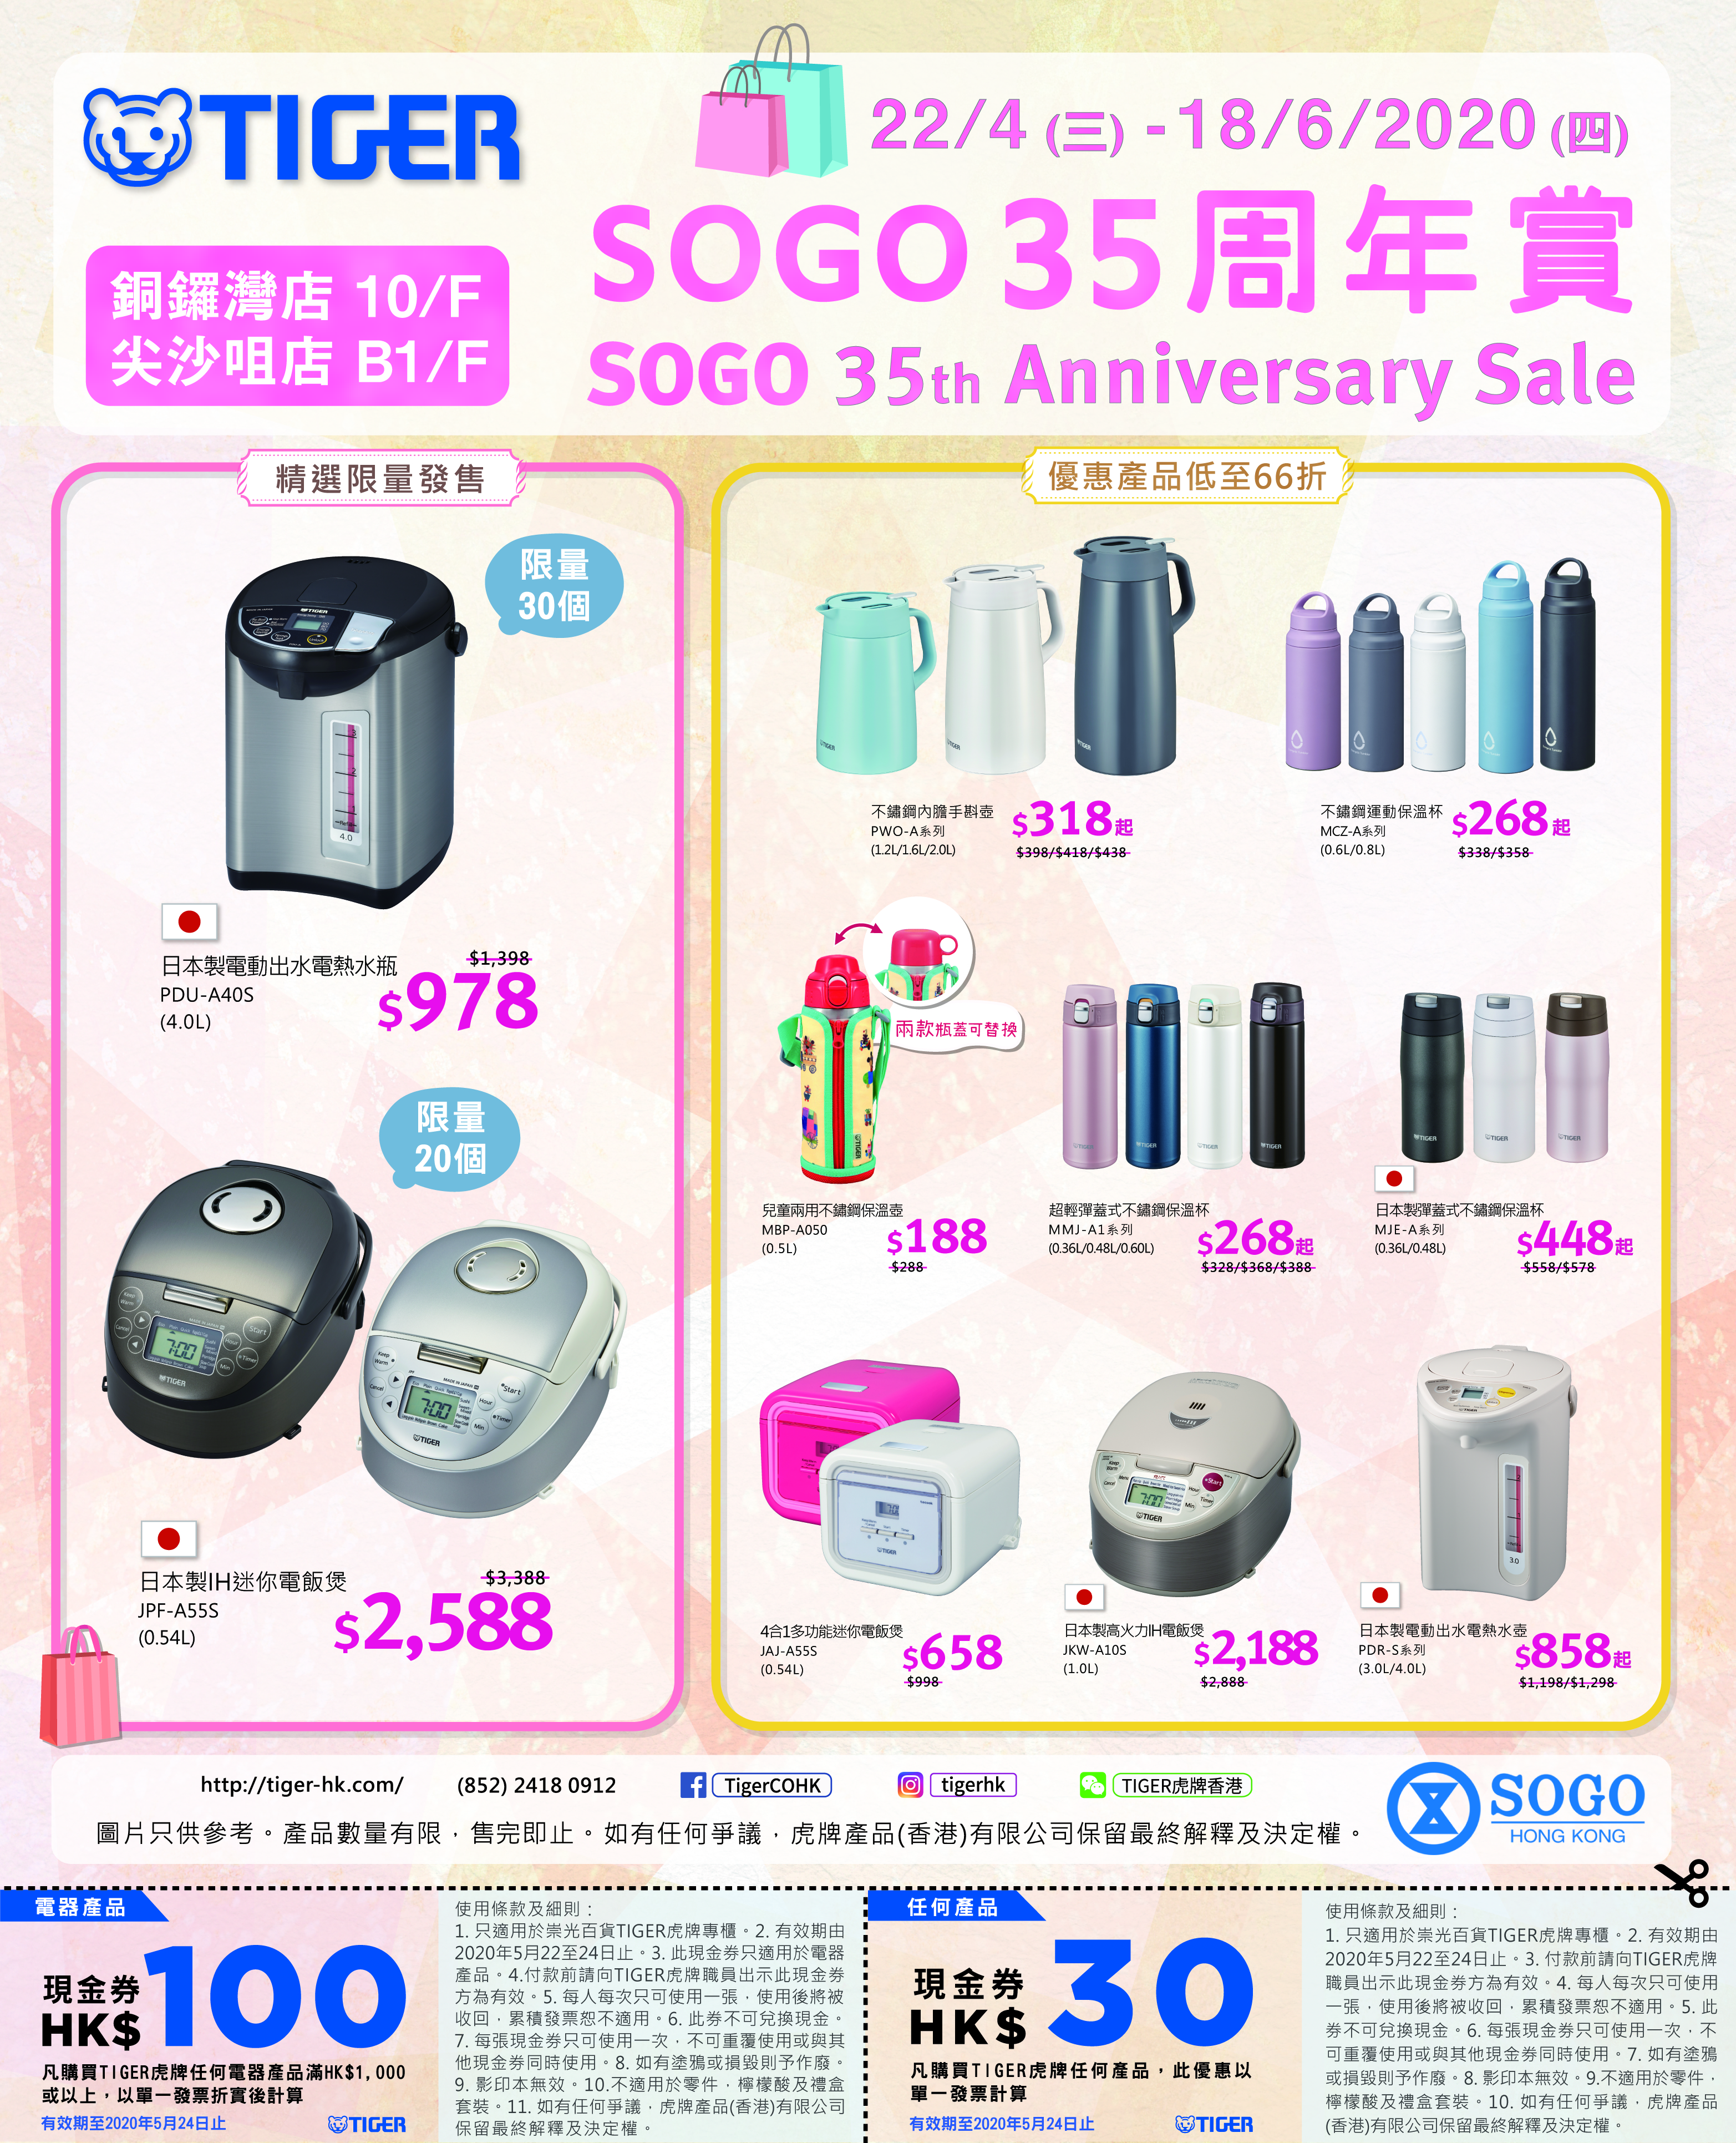 sogo-anniversary sale-newspaper ad-22May2020-v2.jpg (12.43 MB)